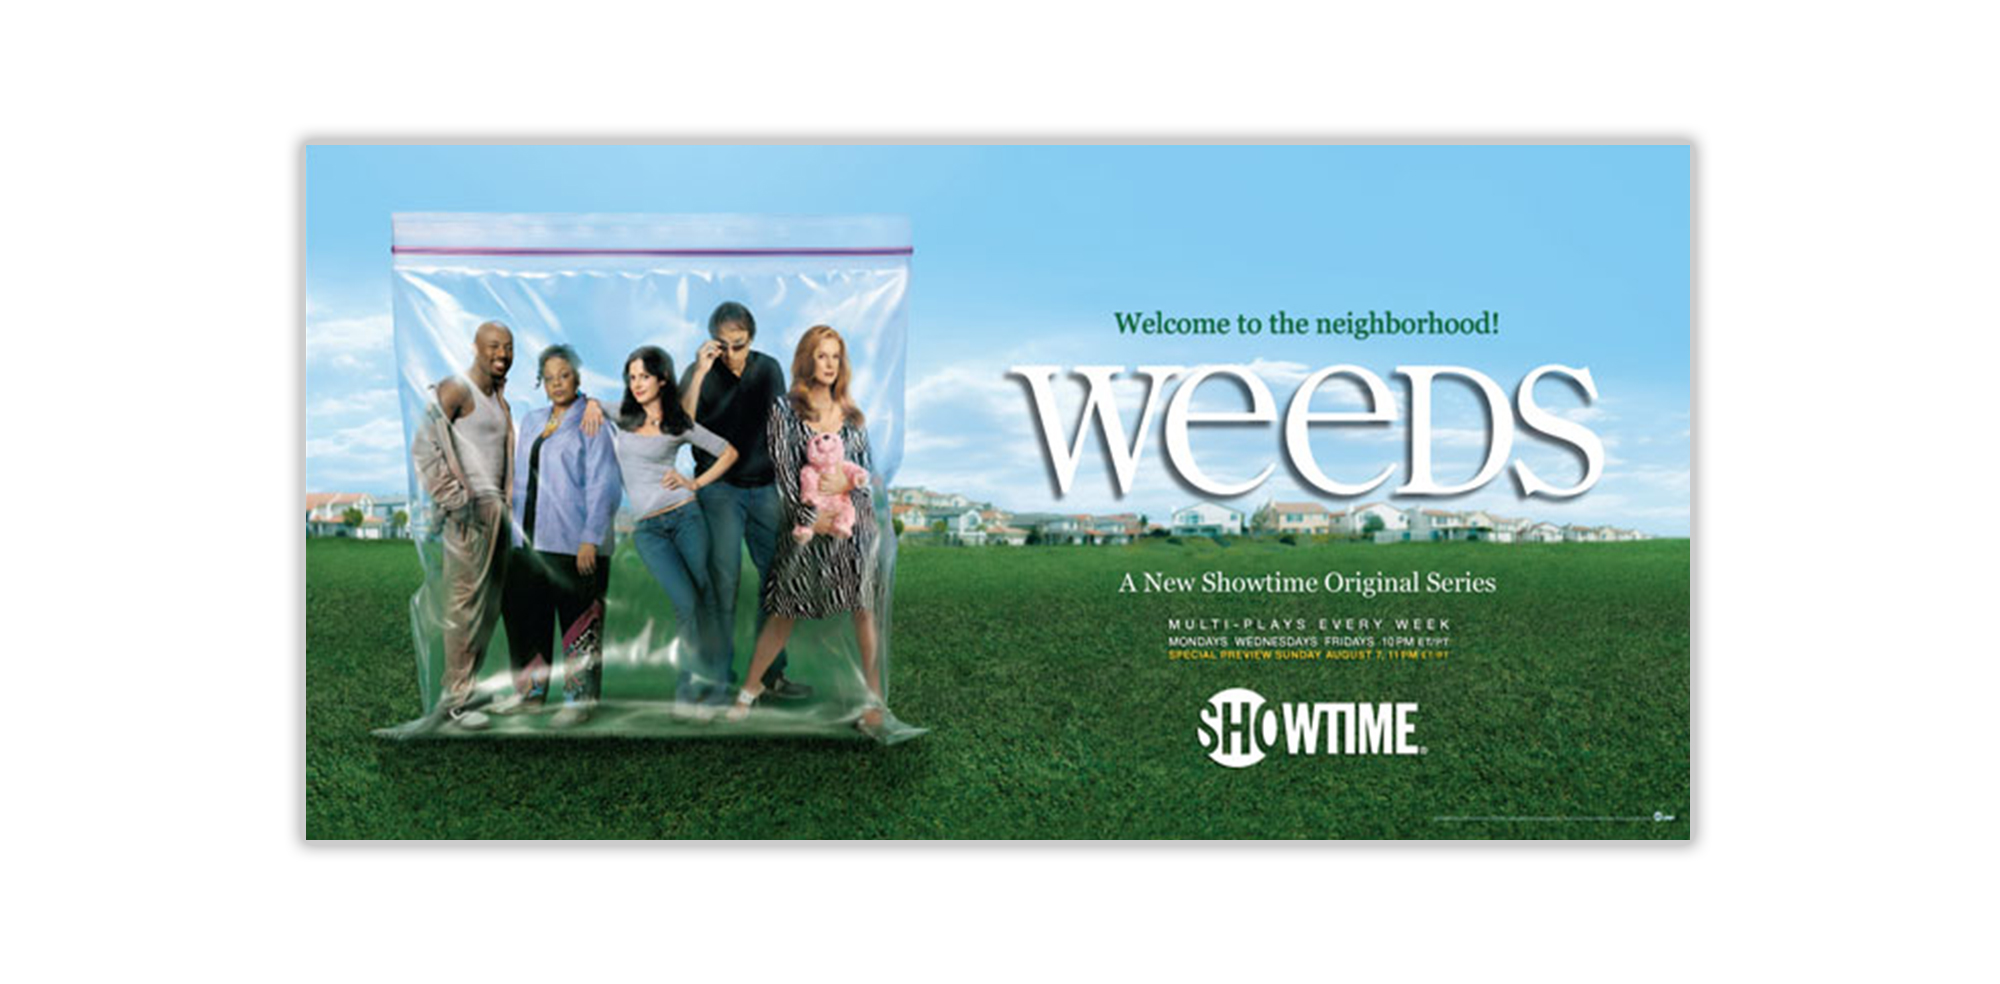 Times Square Weeds Billboard